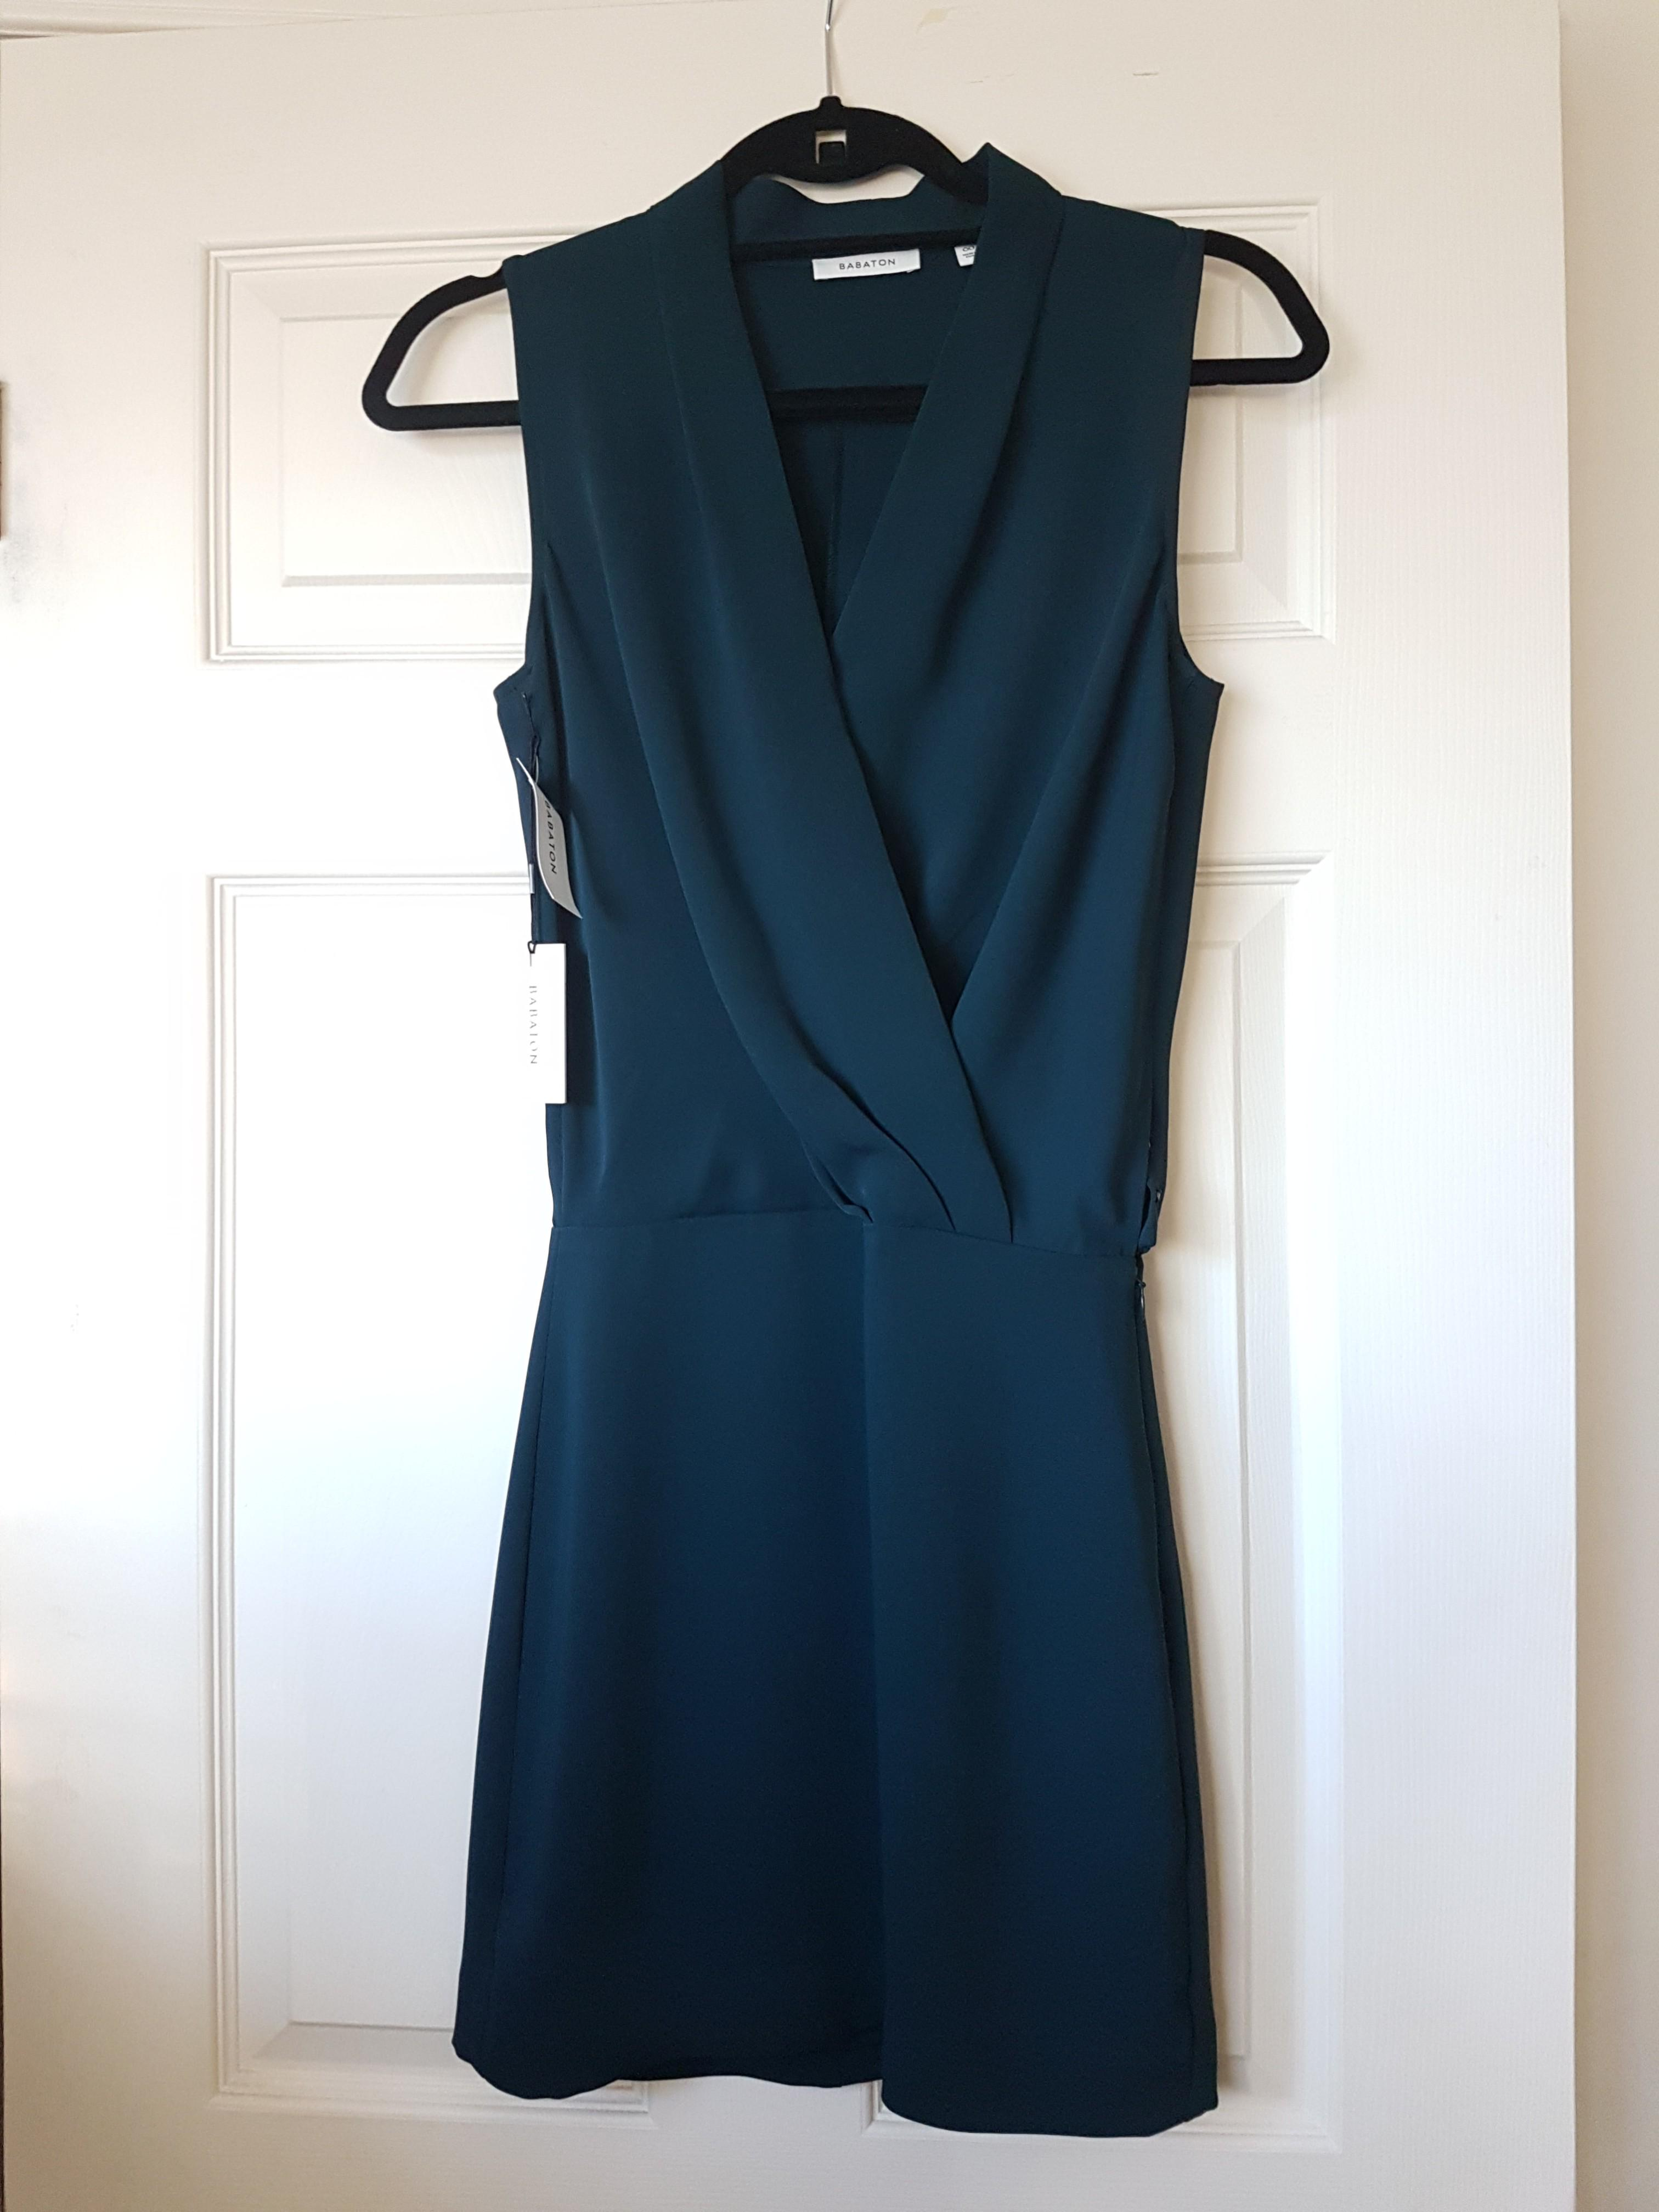 BNWT Aritzia Babaton Phoenix Dress in Everest size 00